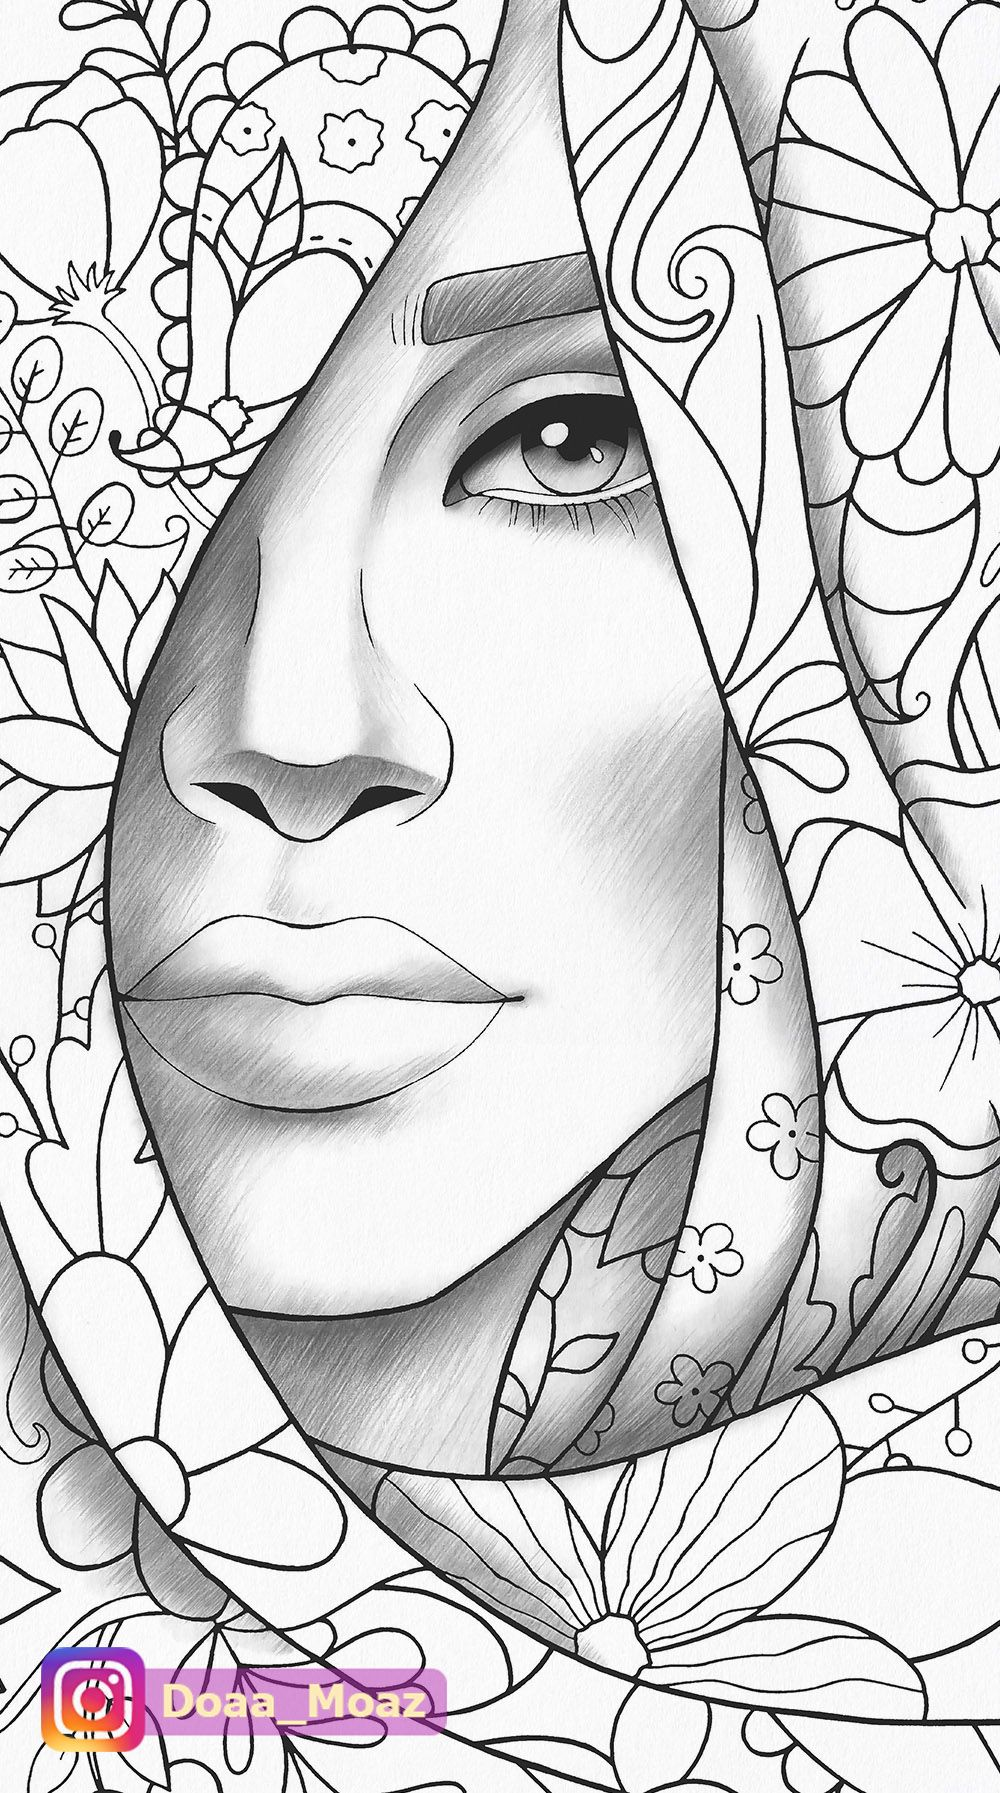 Adult coloring page girl portrait and clothes colouring sheet floral pdf printable anti-stress relaxing zentangle line art